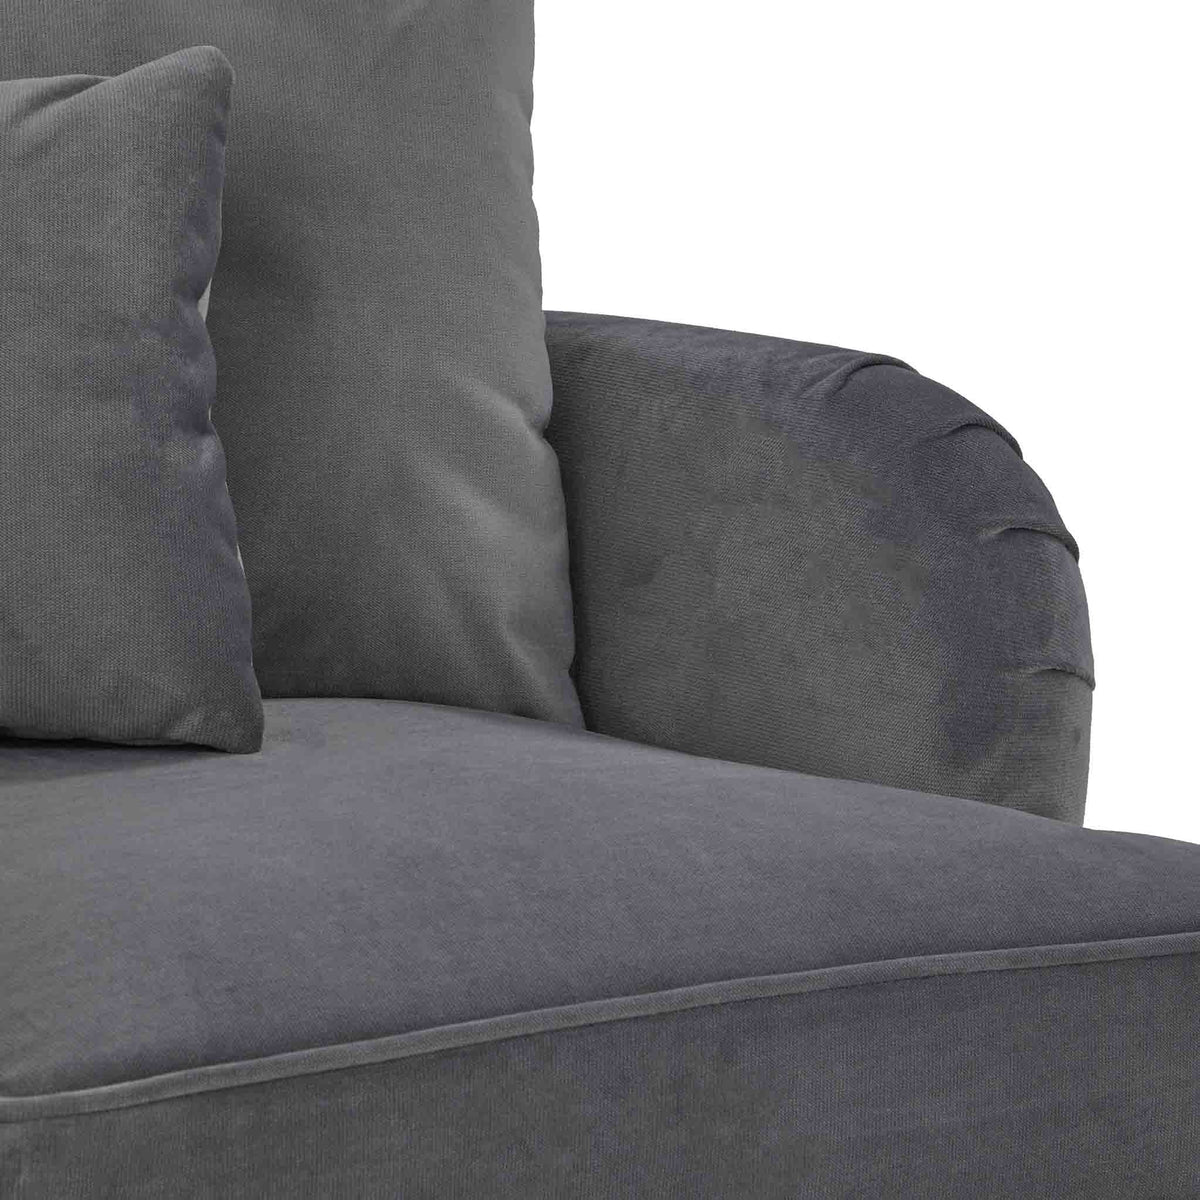 close up of the seat cushions on the Piper Grey Velvet Corner Chaise Sofa from Roseland Furniture